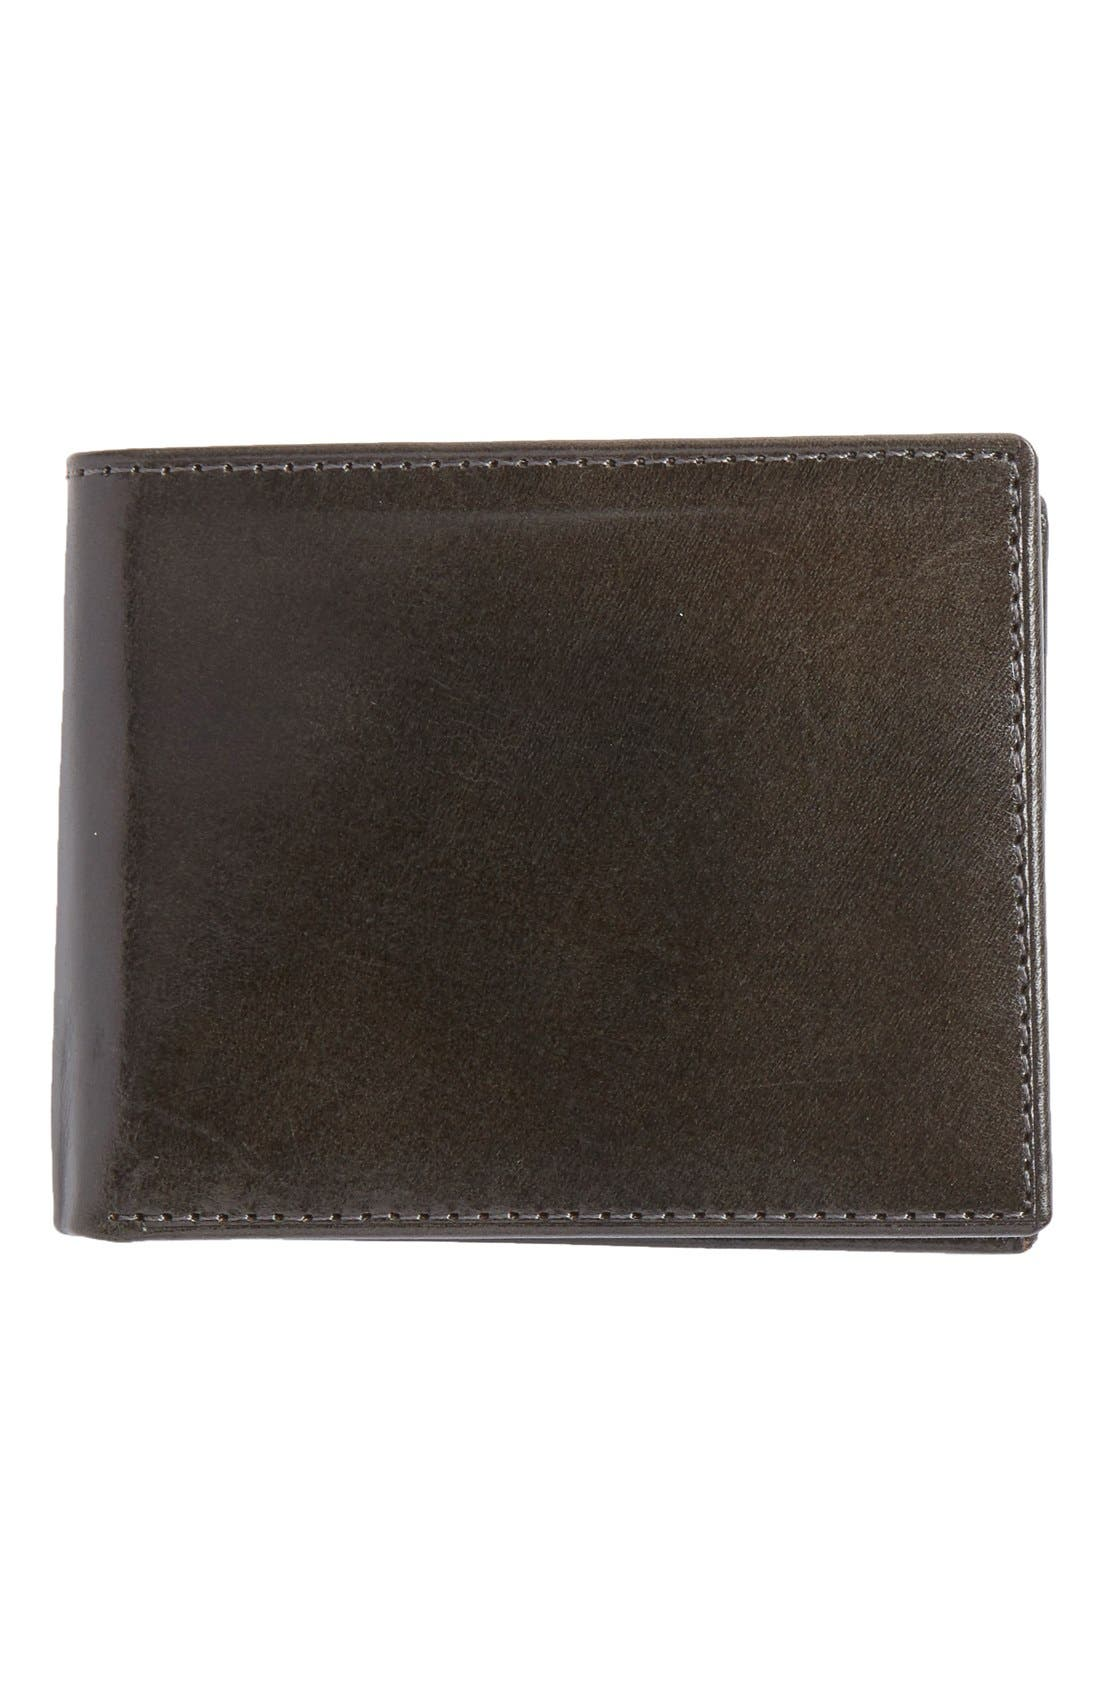 Flip Billfold Leather Wallet,                         Main,                         color, CHARCOAL